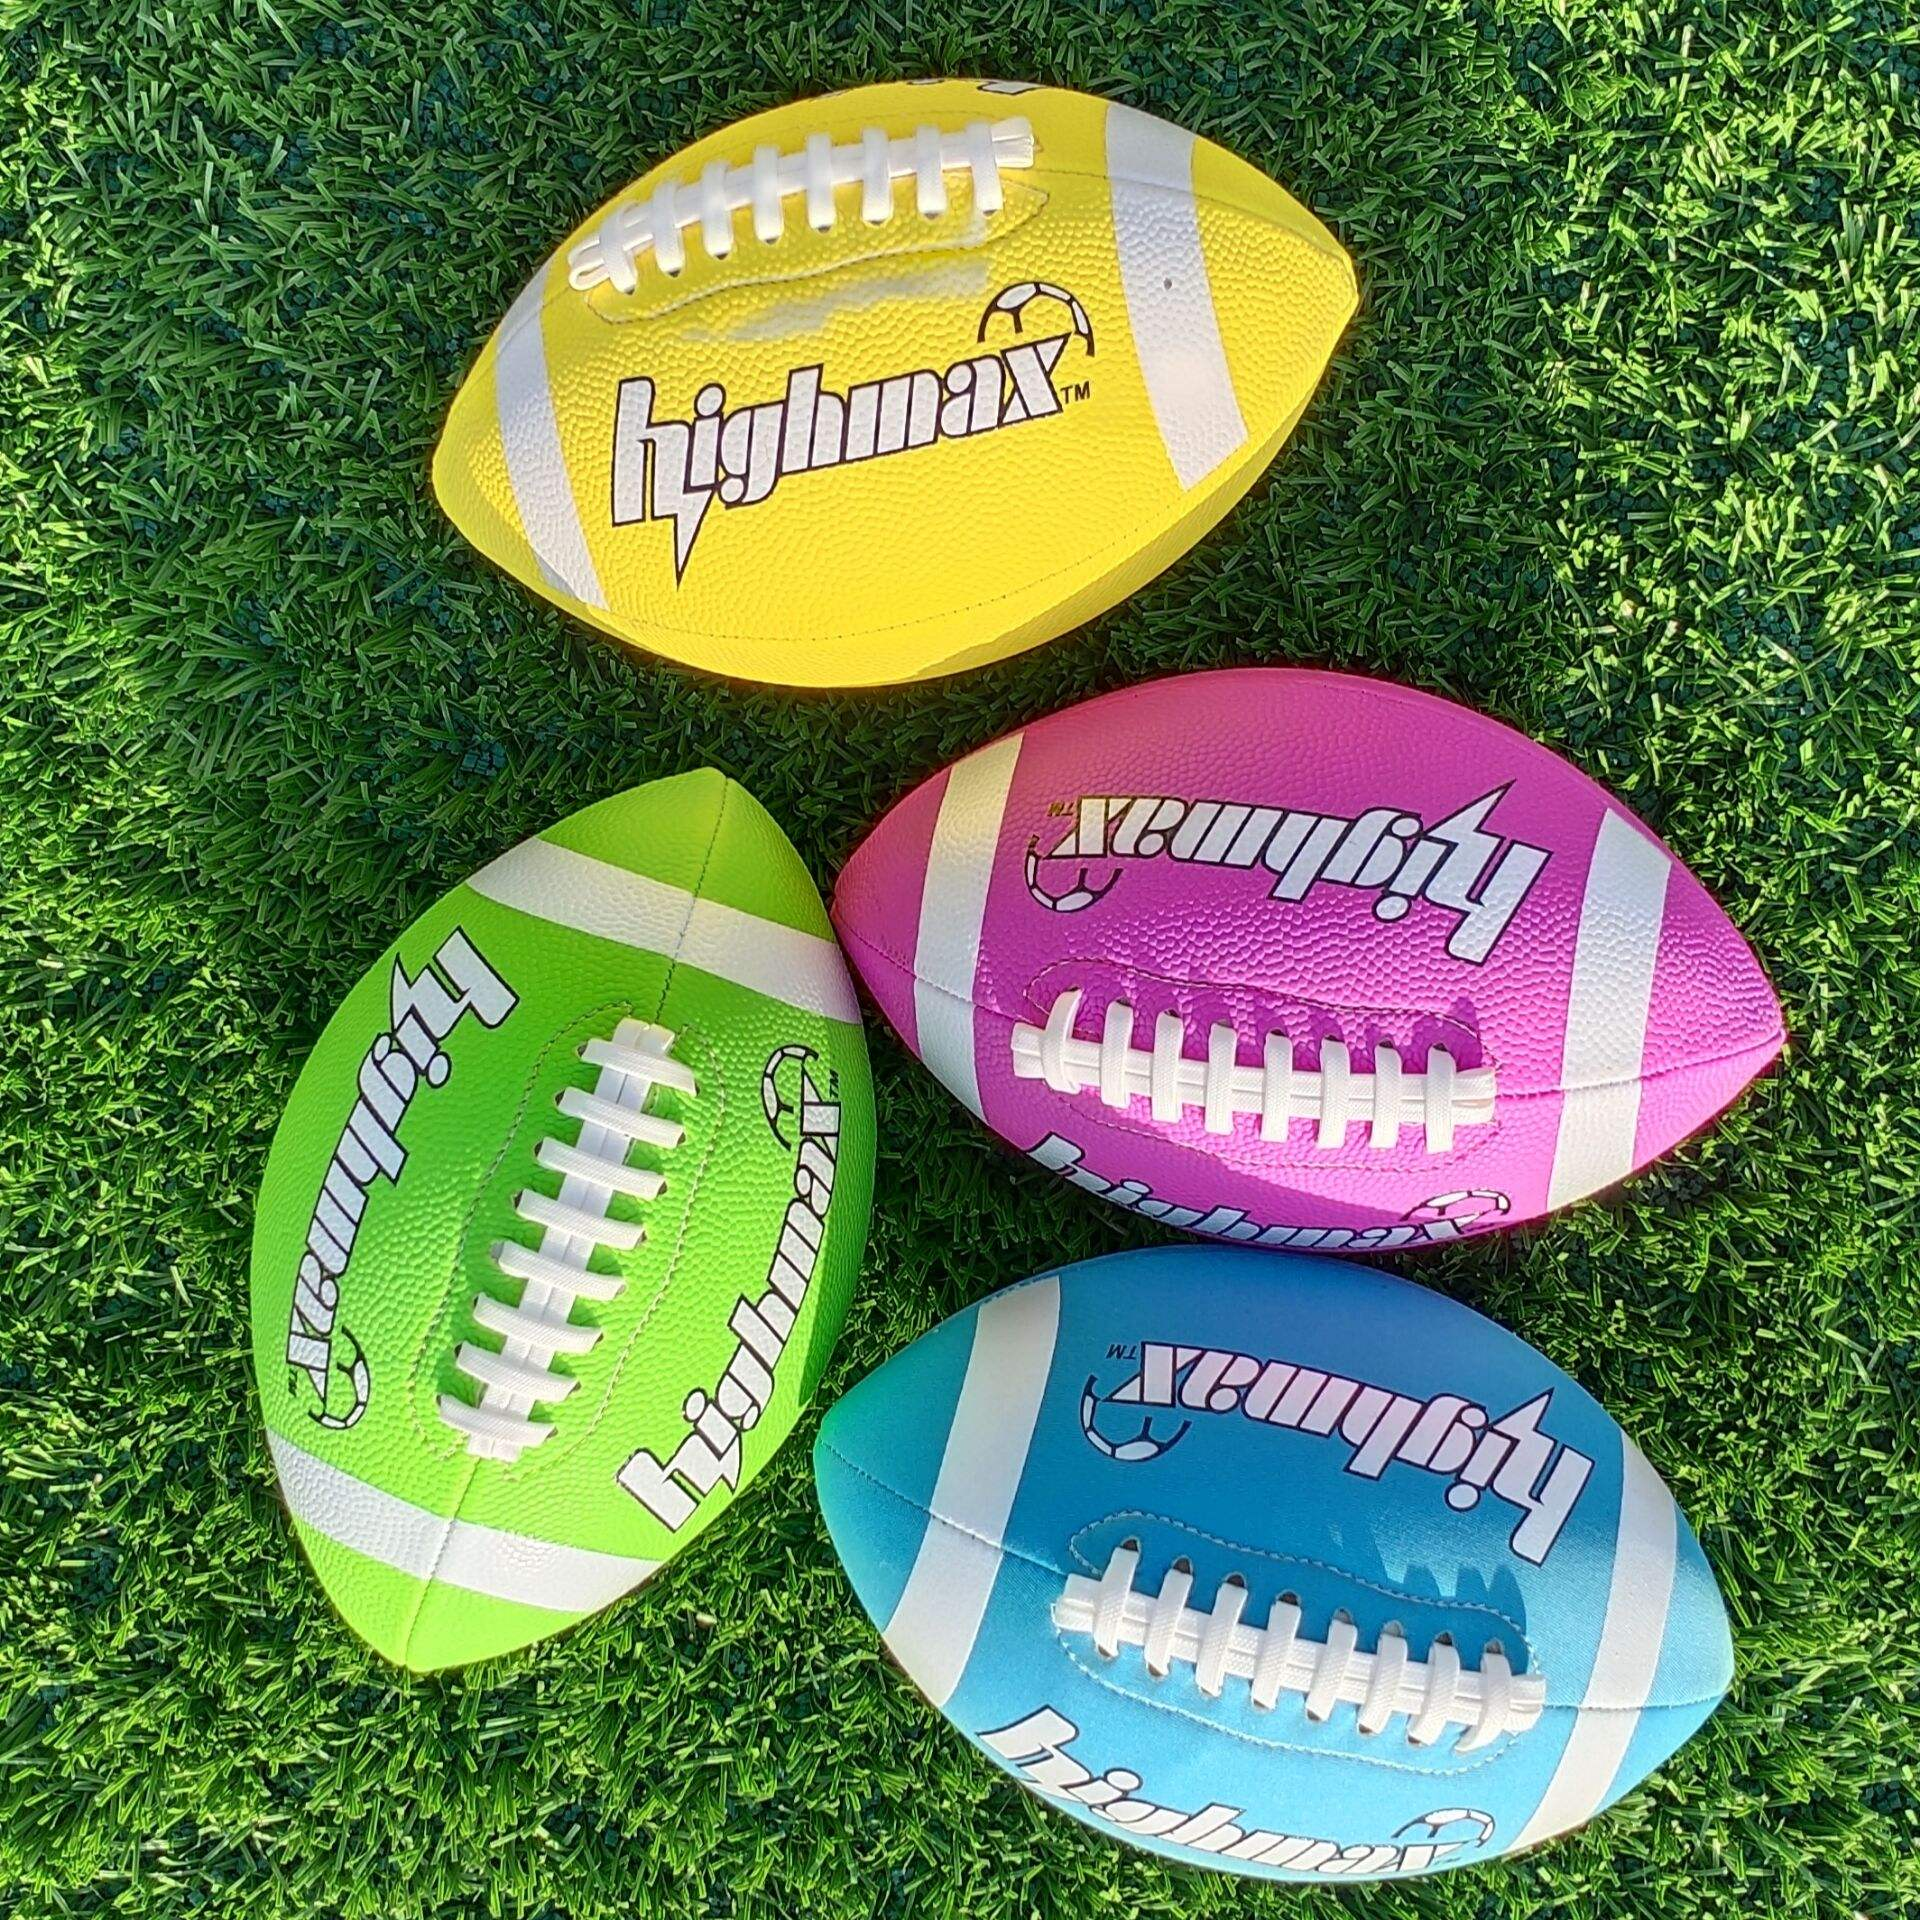 wholesale logo rugby ball toy mini kids ball football 3 cloth ball rugby custom pvc rugby